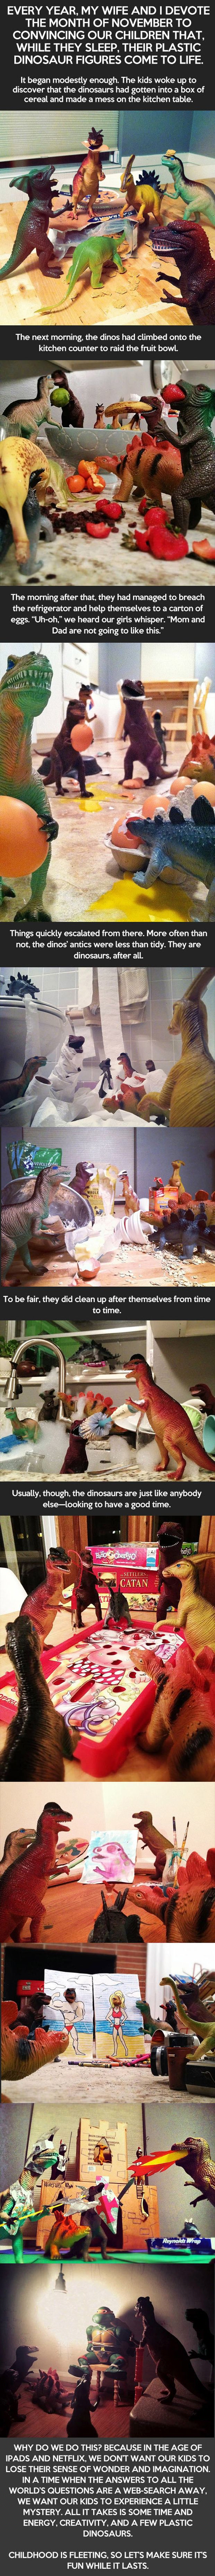 Convincing your kids that their dinosaur toys come alive while they're sleeping!